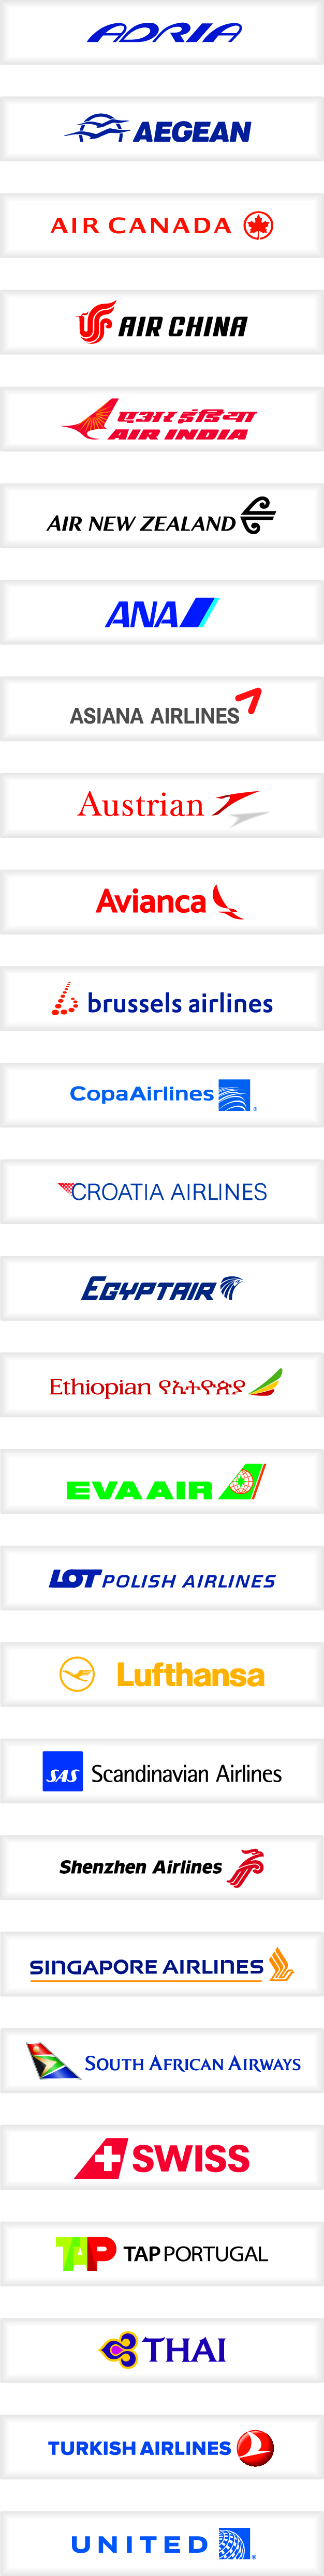 Internet putovanja - Official travel agency for SDEWES2015 for  international flight tickets